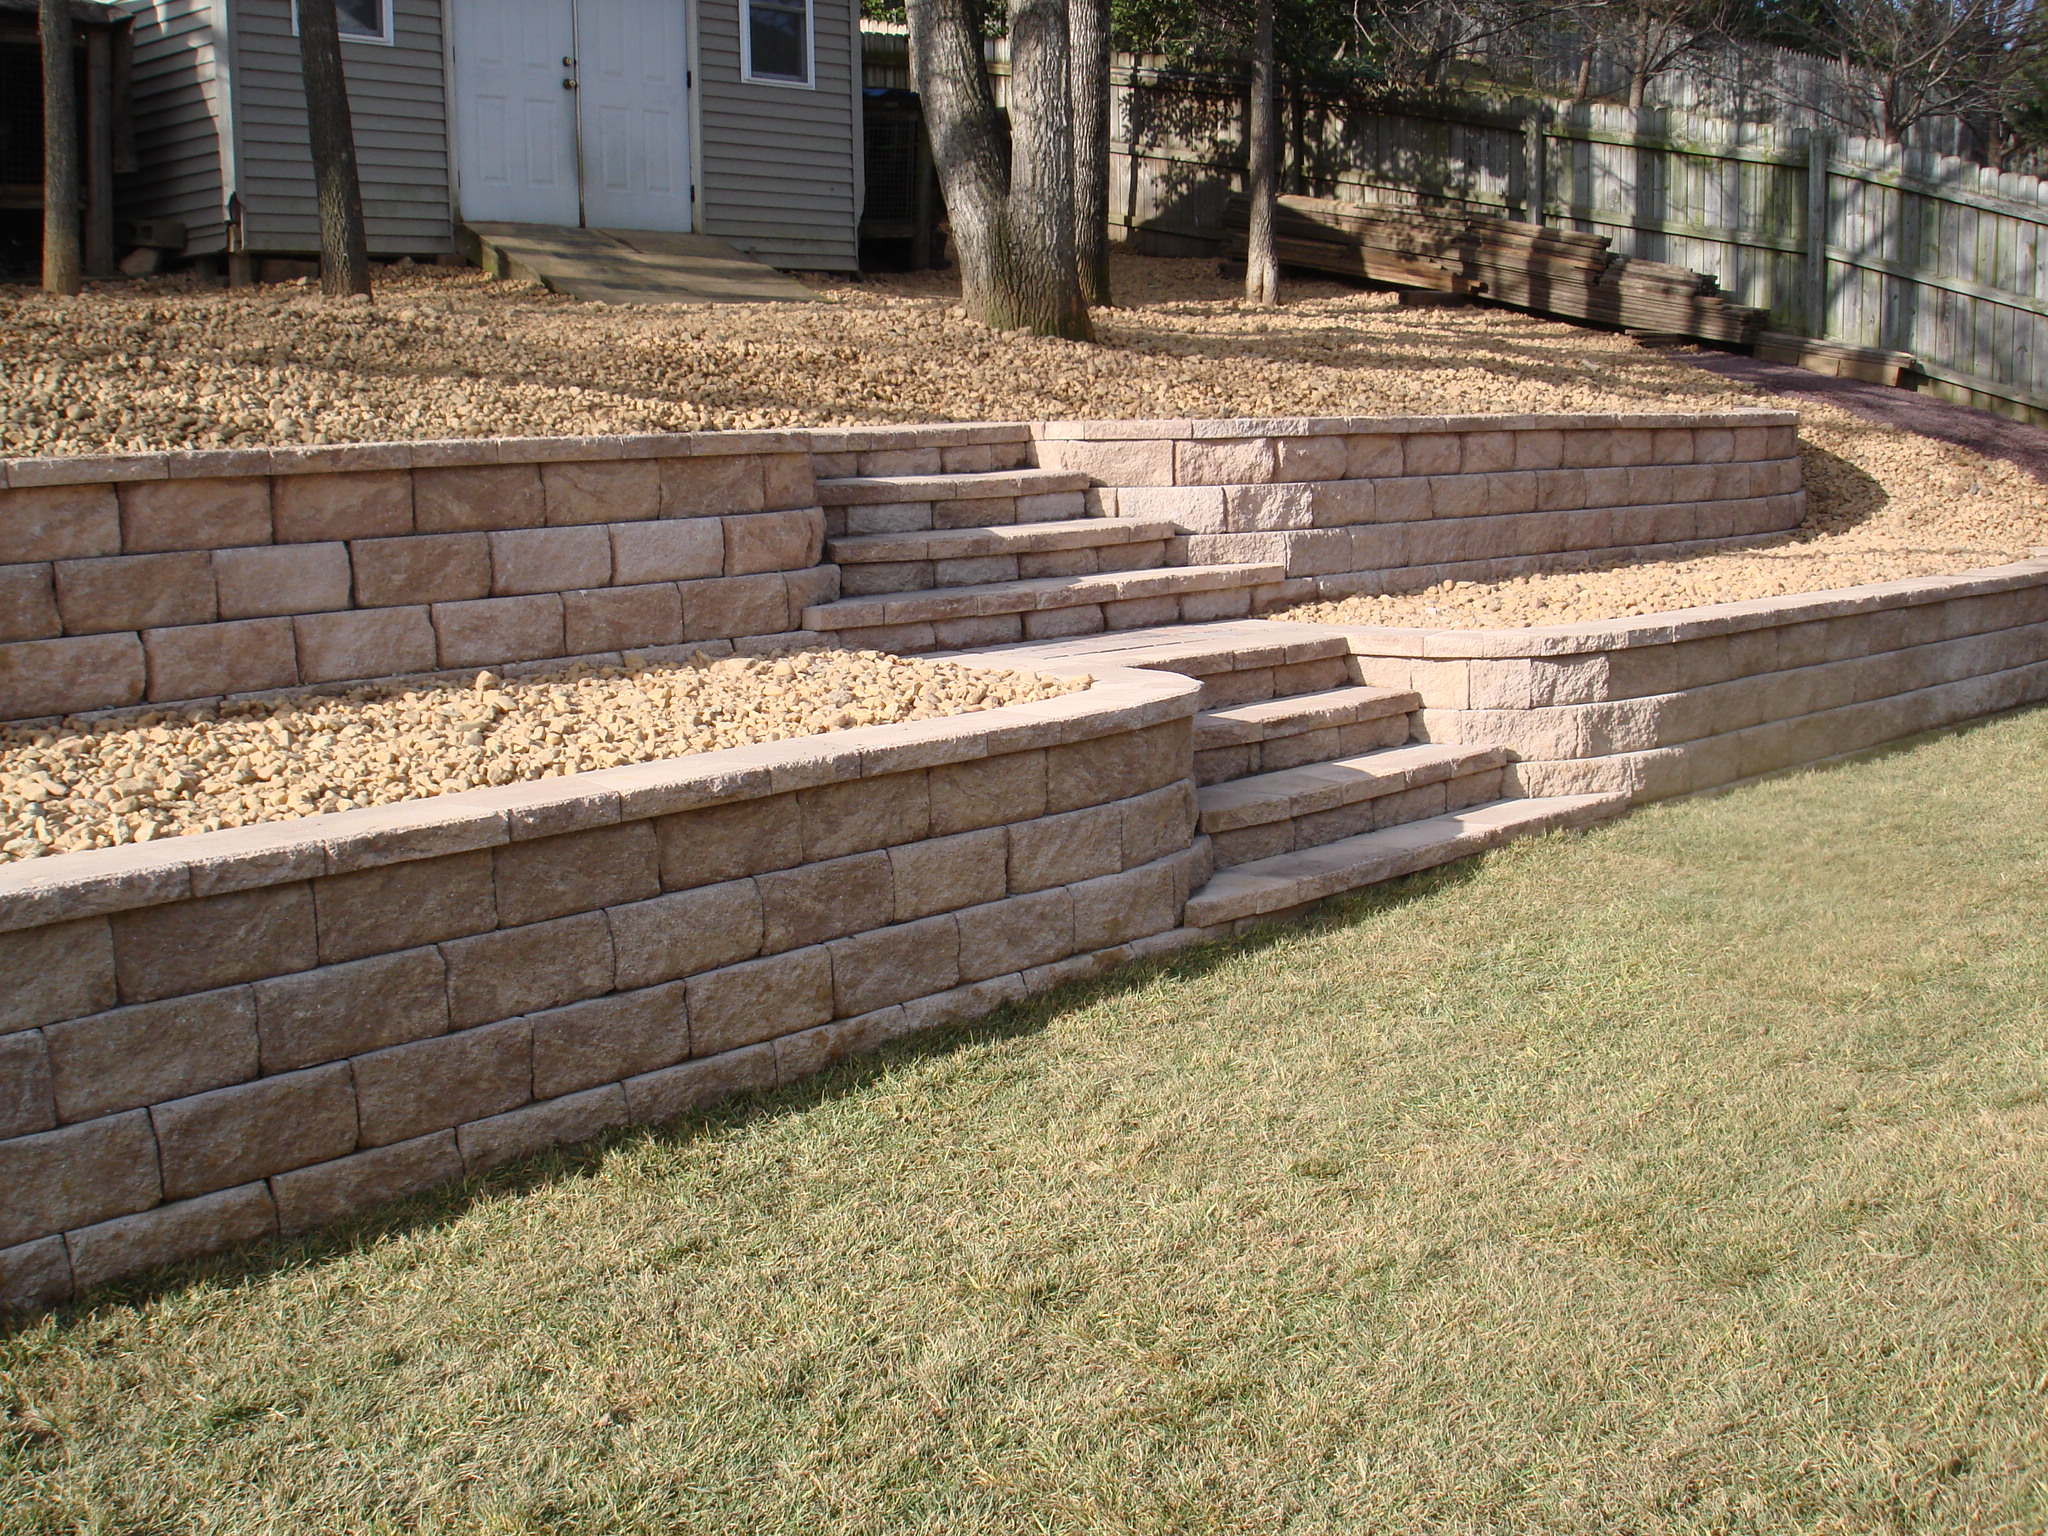 1000 images about Front yard on Pinterest  Retaining walls Facades and Landscaping